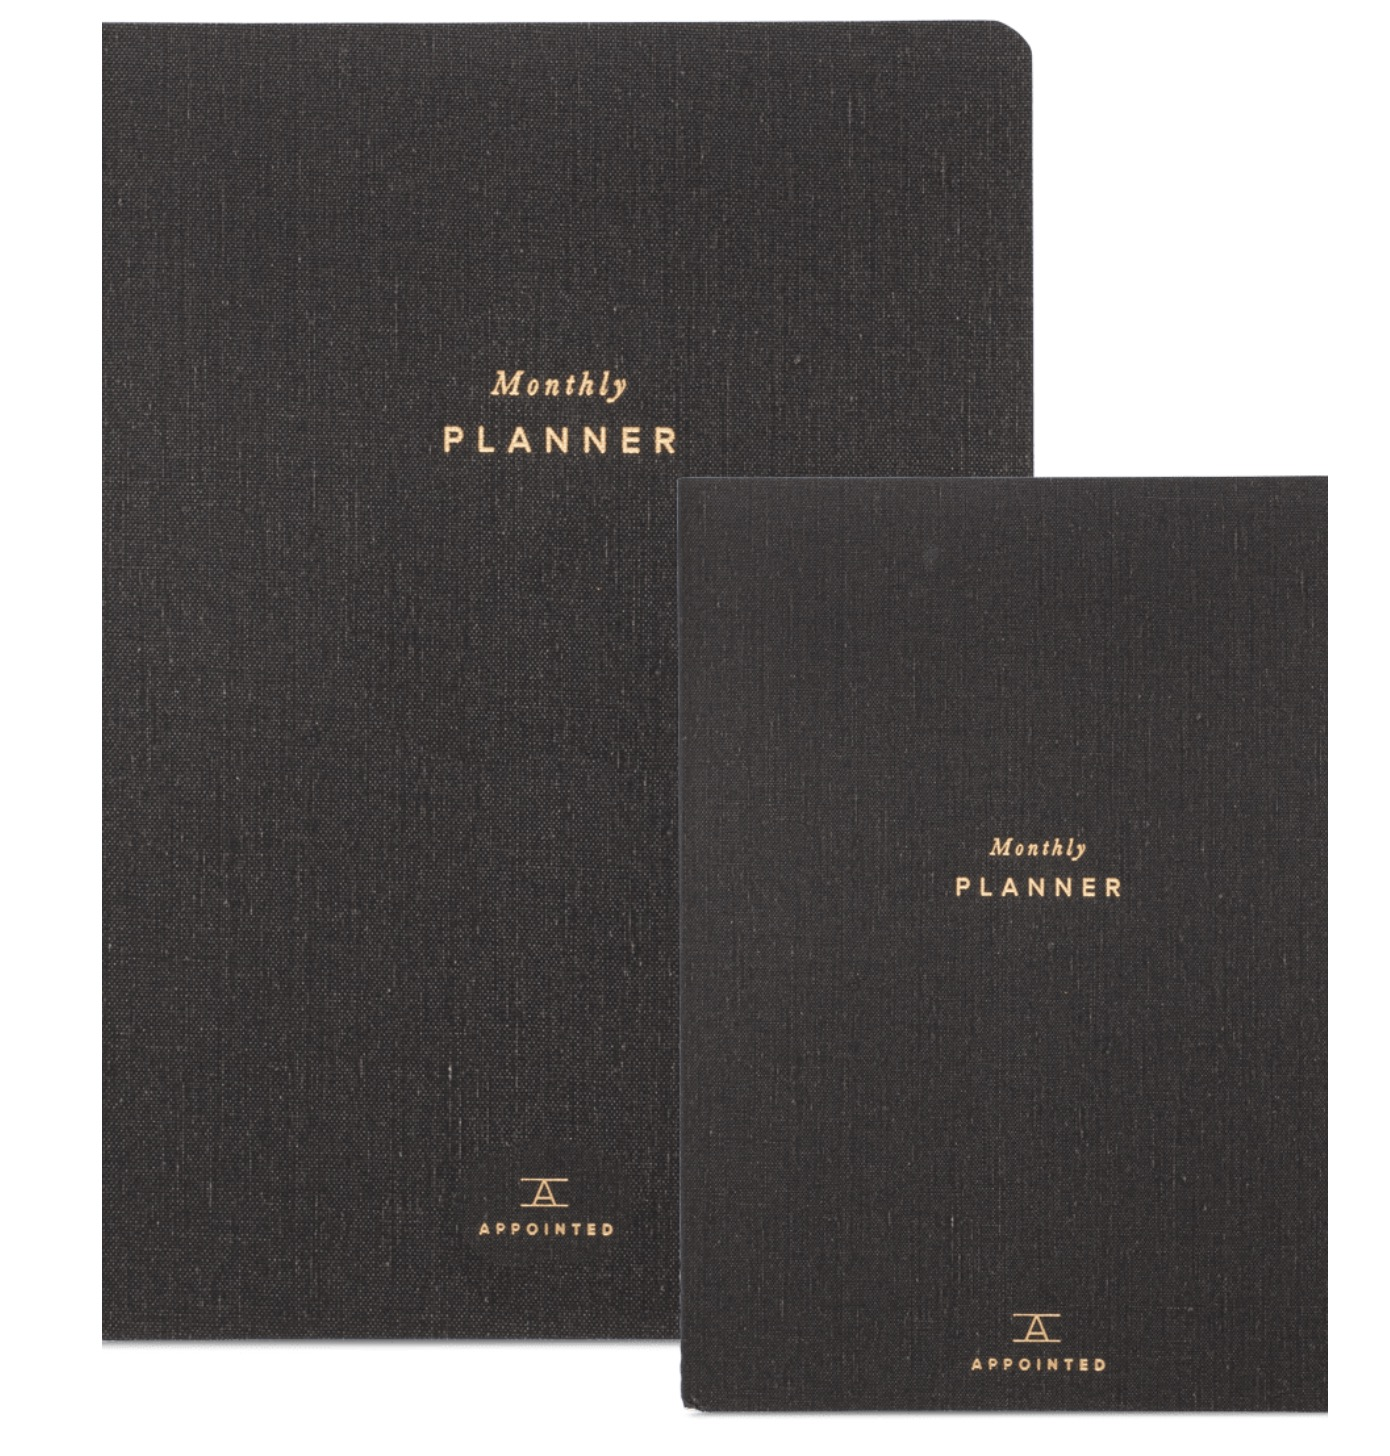 Appointed Monthly Planner, $20